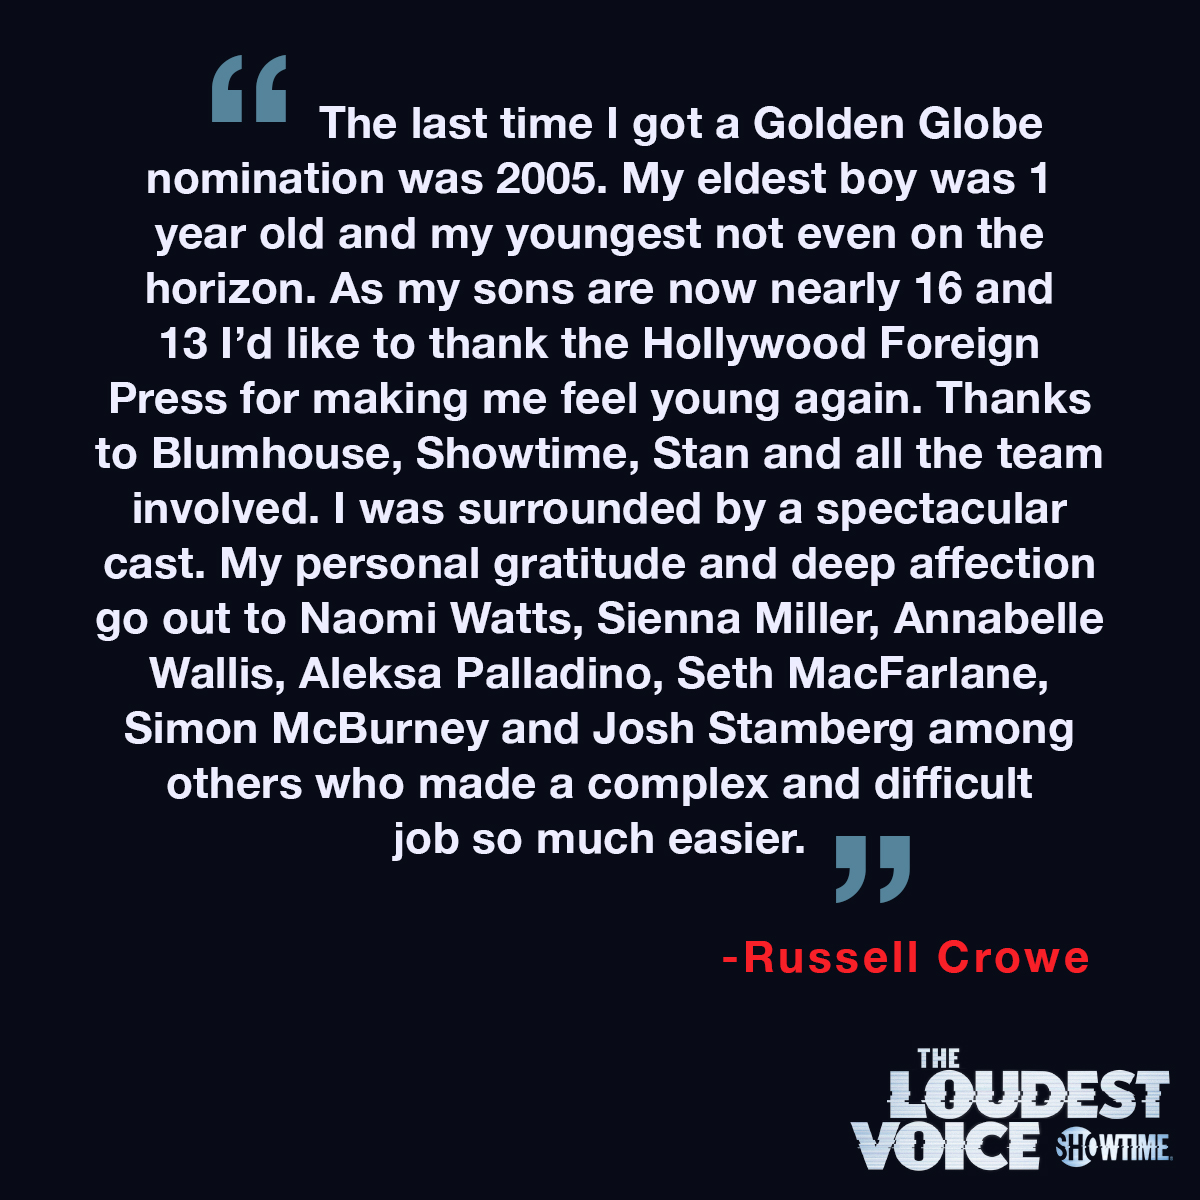 A statement from @russellcrowe on his #GoldenGlobes nomination for #TheLoudestVoice: https://t.co/LPMYmZN8xD